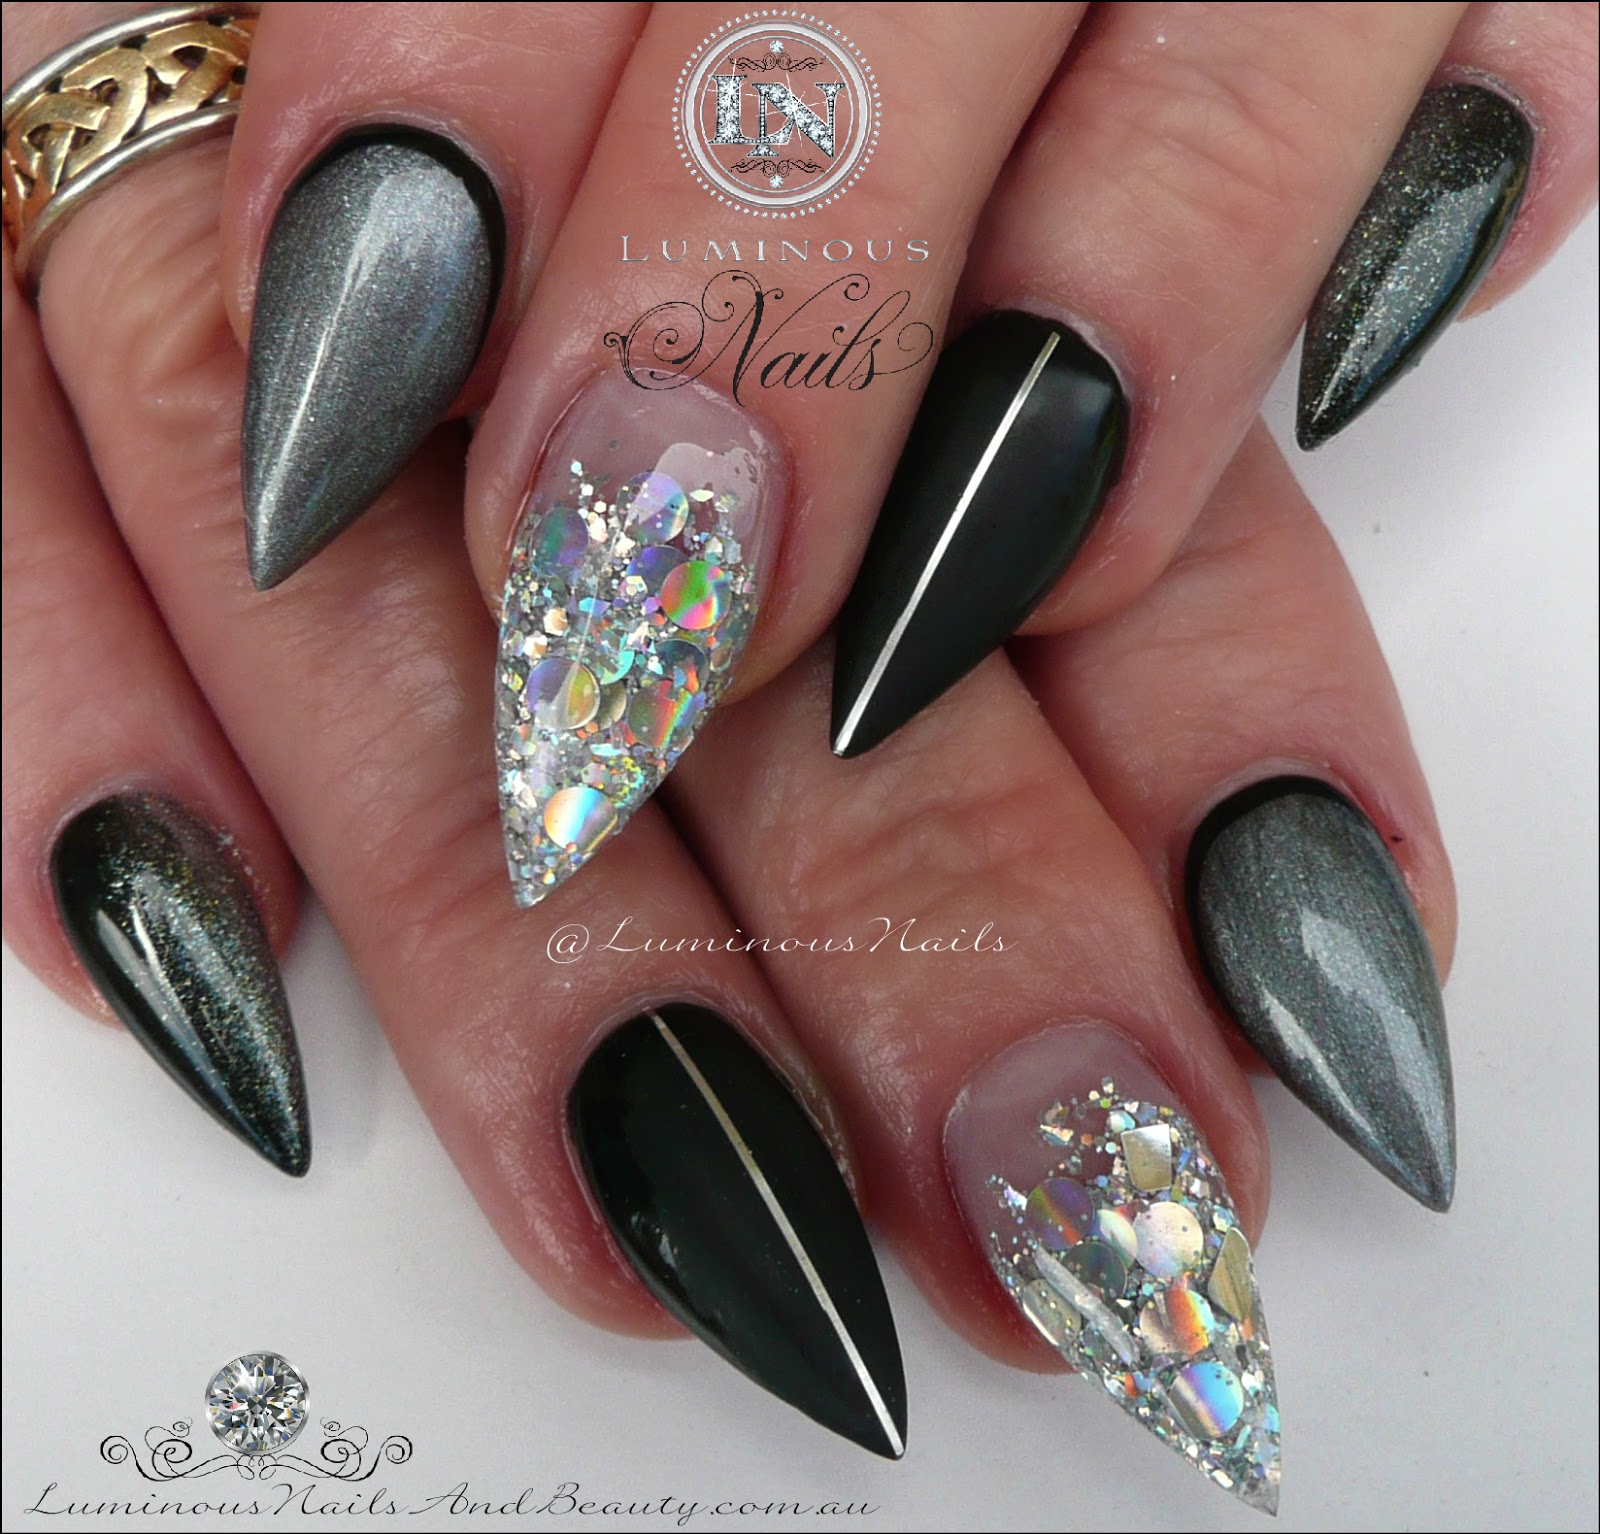 luminous nails black matt black steel grey ombre